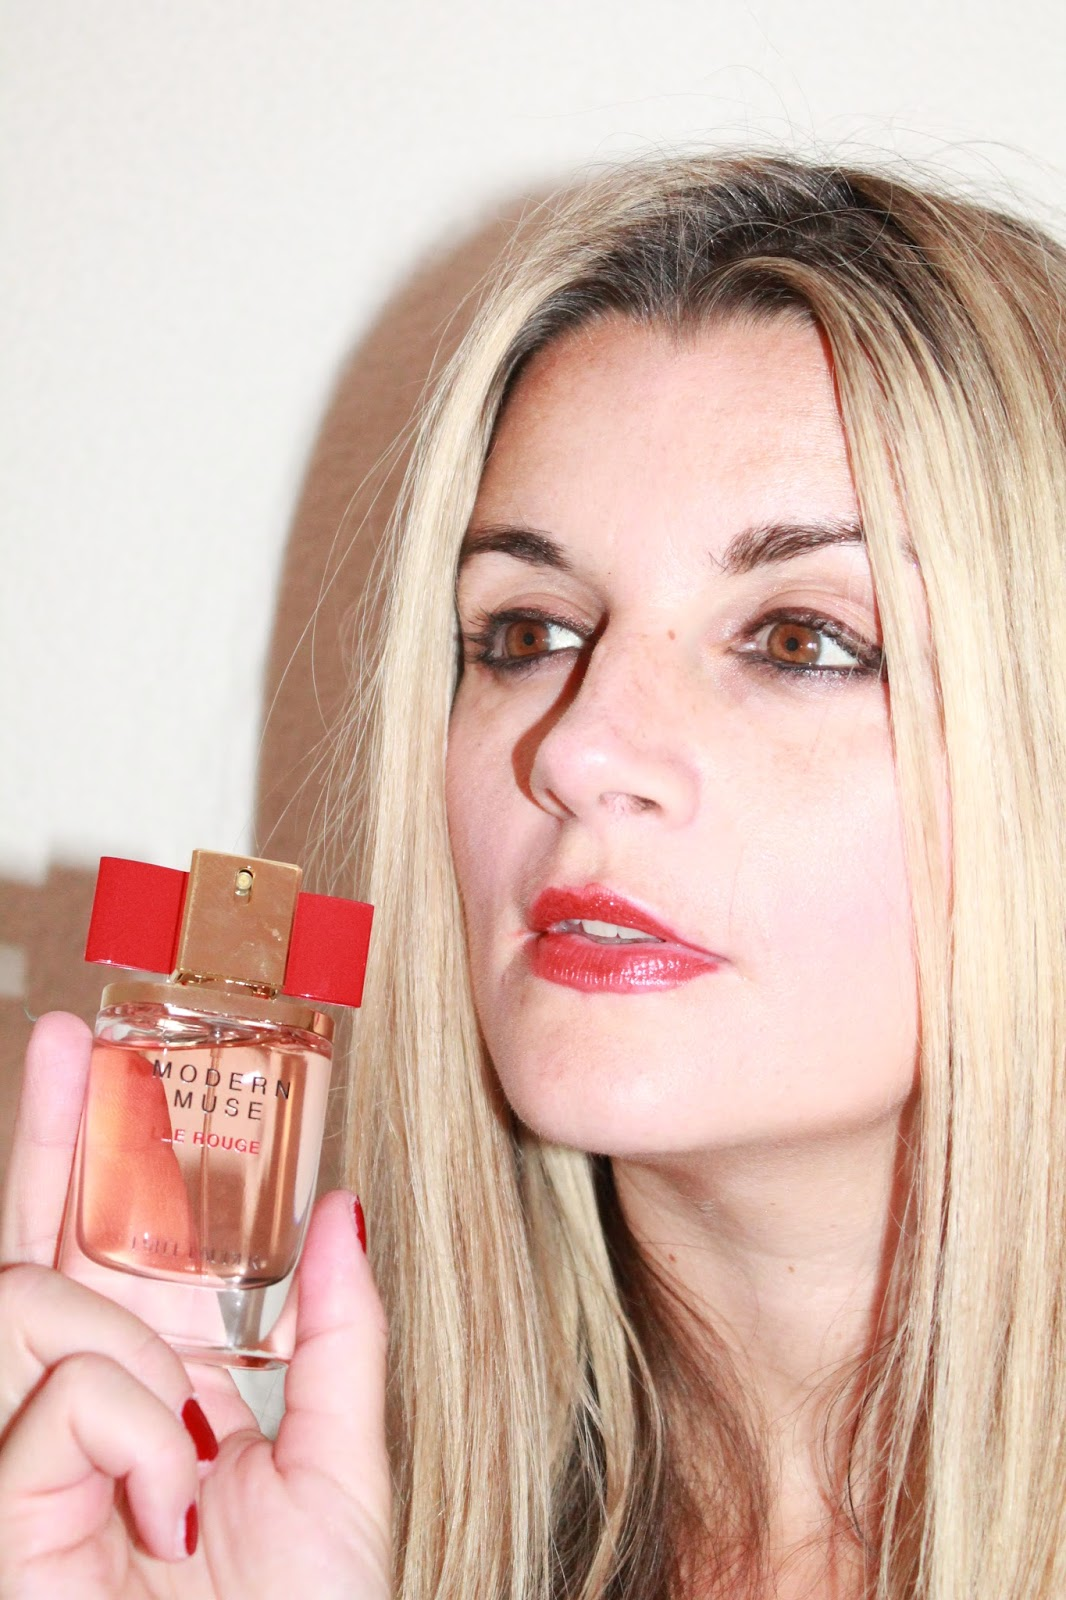 My Sweet Valentine Modern Muse Le Rouge The New Feminine Fragrance Estee Lauder Chic For Women Edp 100ml With Such A Sophisticated Floral Scent But Some Undertones It Is Really Perfect Day And Night